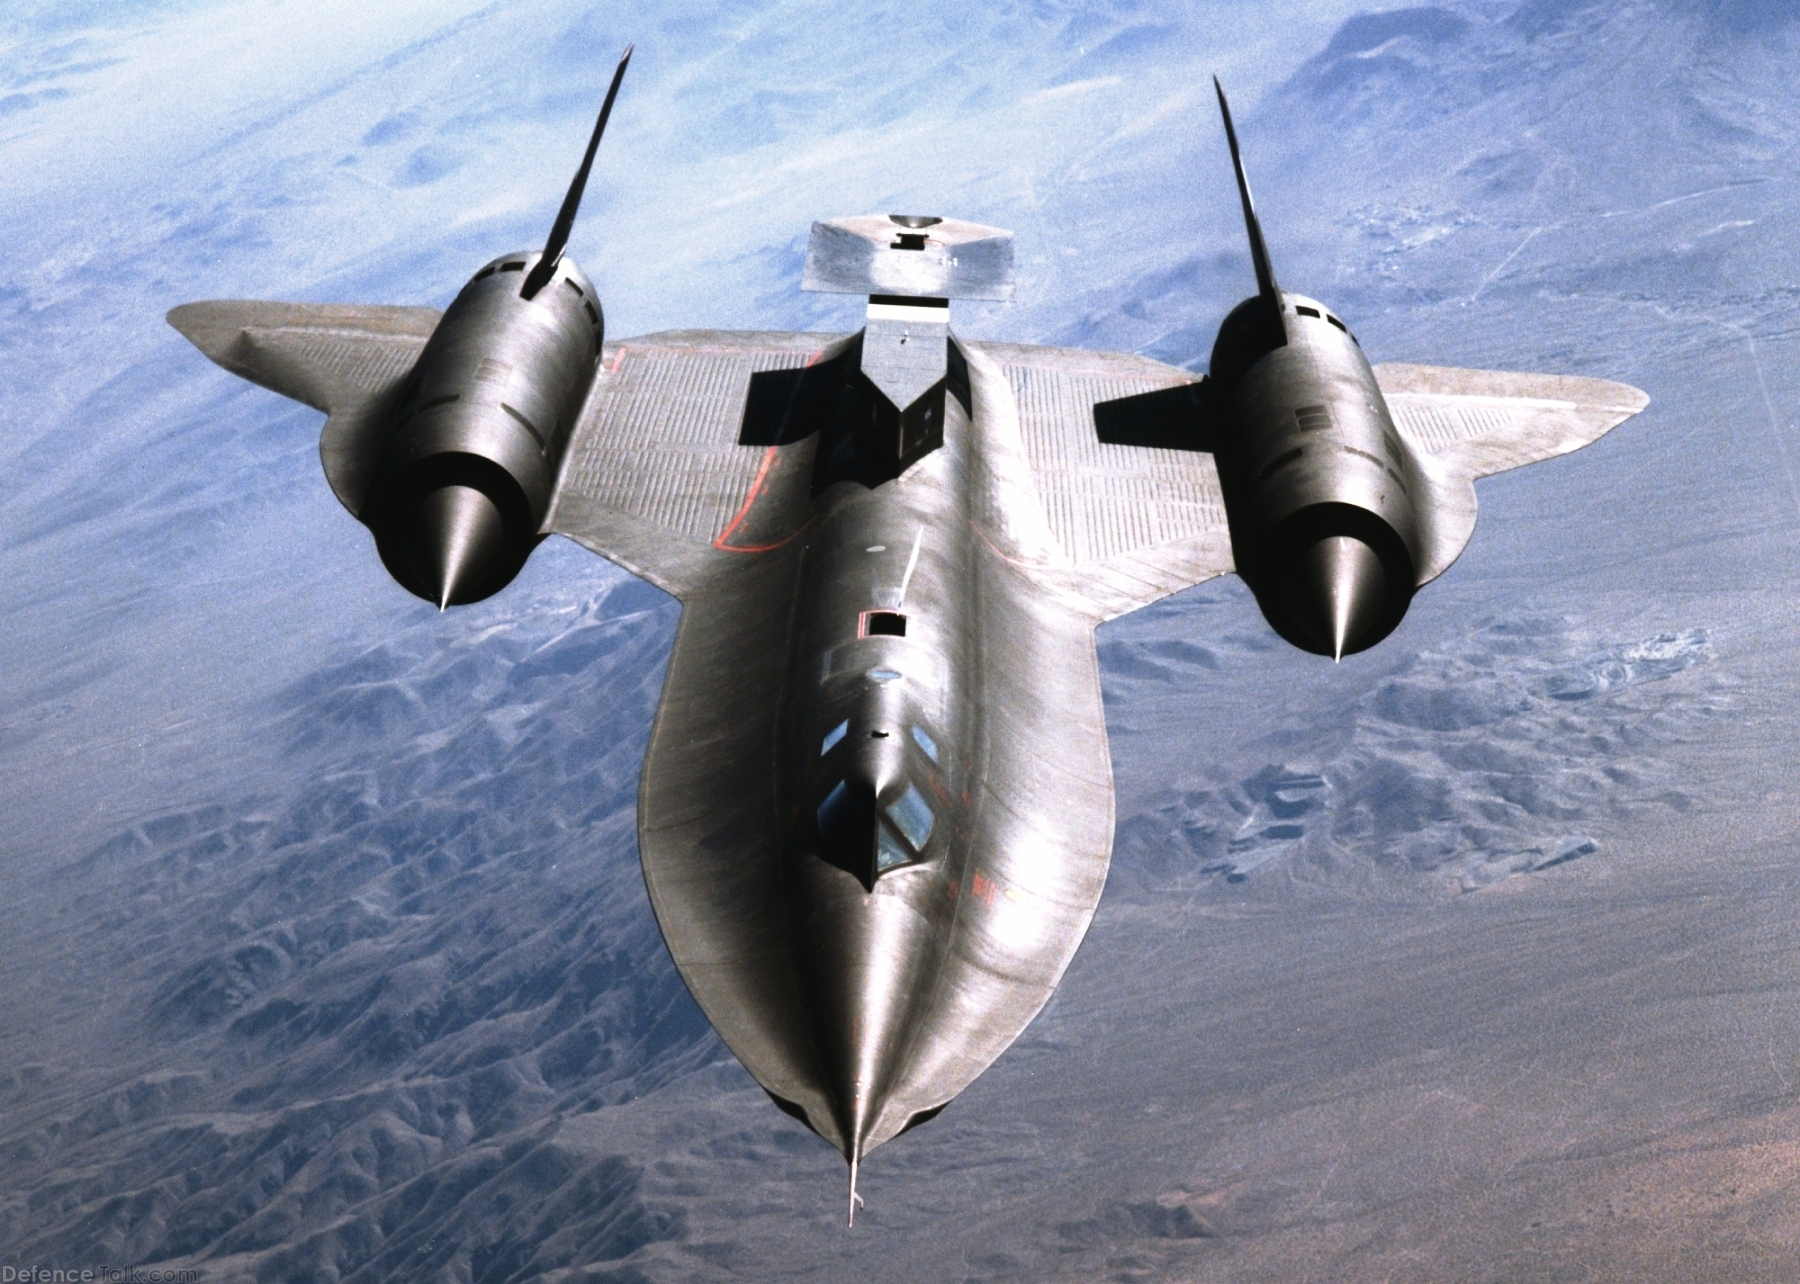 USAF/NASA SR-71A Blackbird